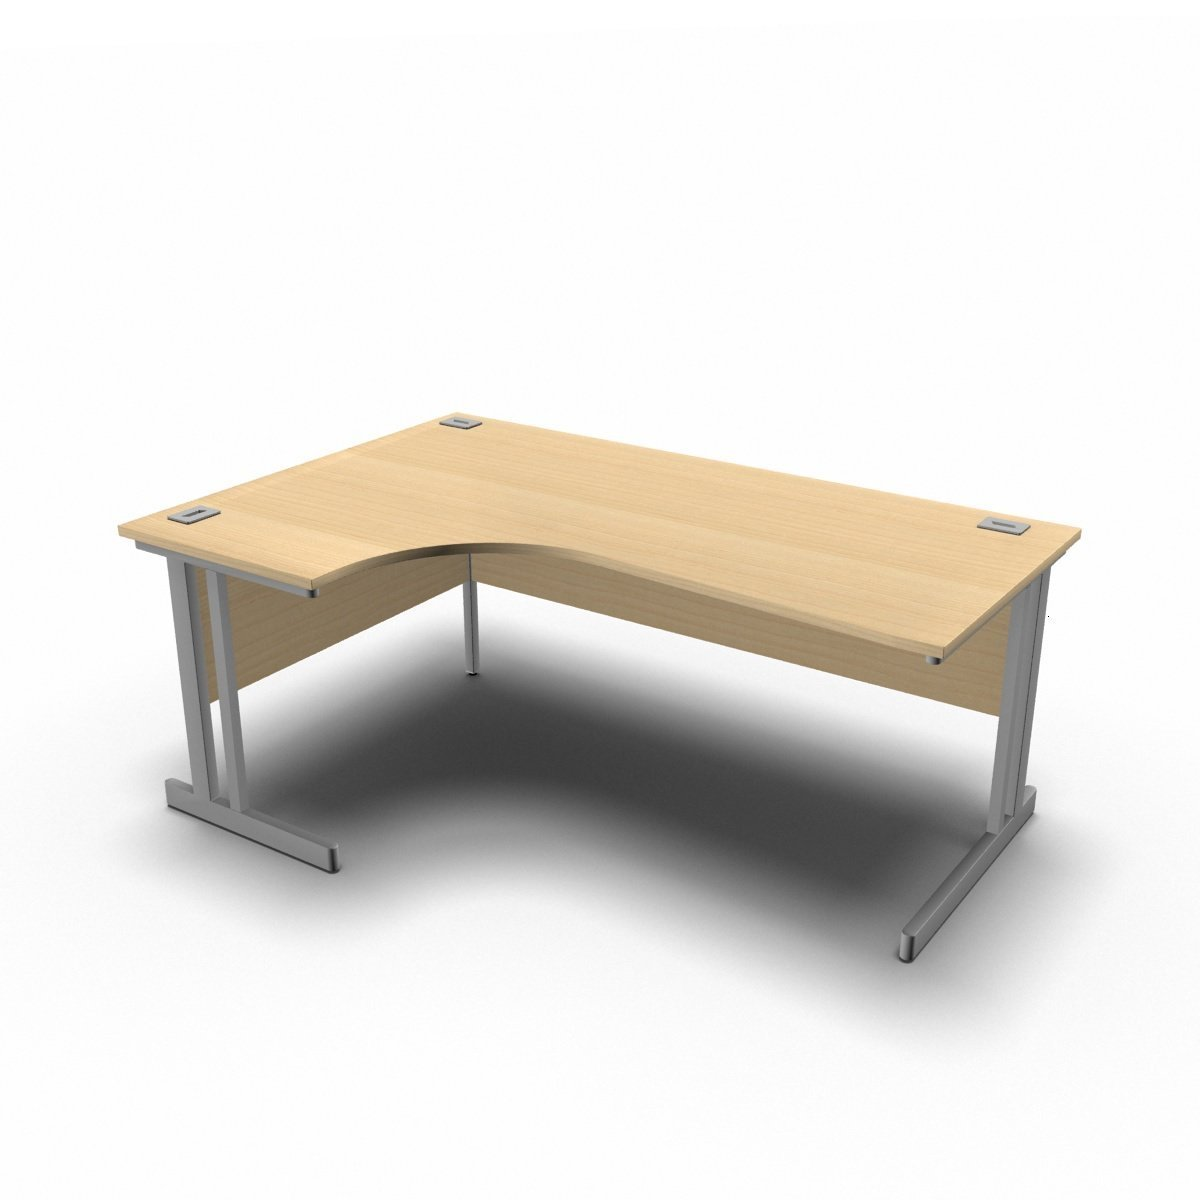 Desk 1800 x 1200 x 800 x 600mm / Left / Maple Synergy Crescent Desks